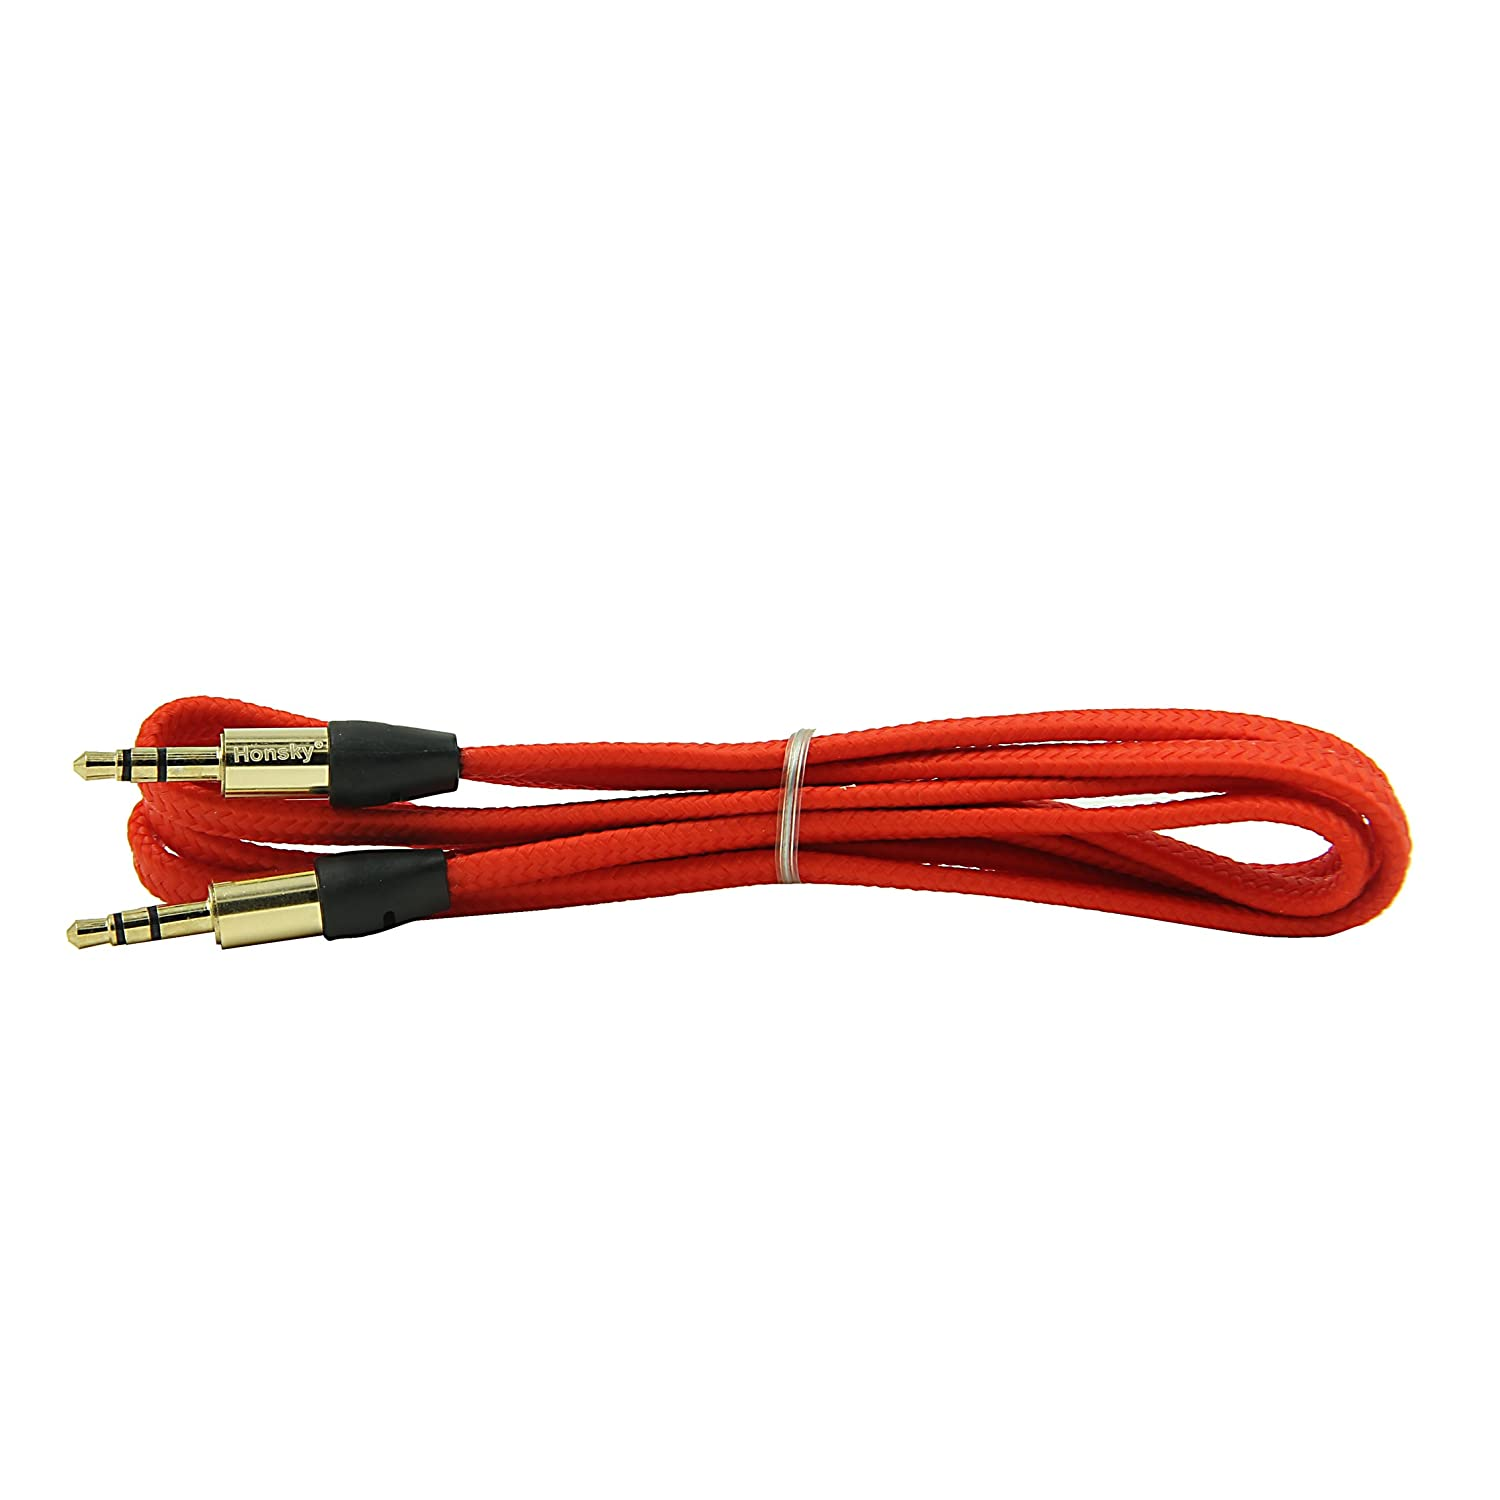 Honsky - Grade A Braided 3FT/1M 3.5mm Male to Male Gold Plate Car Aux Audio Cord - 3.5mm Flat Noodle Braided Design Audio Cable 3 5mm male to 3 5mm male audio car aux earphone cable red white black 120cm